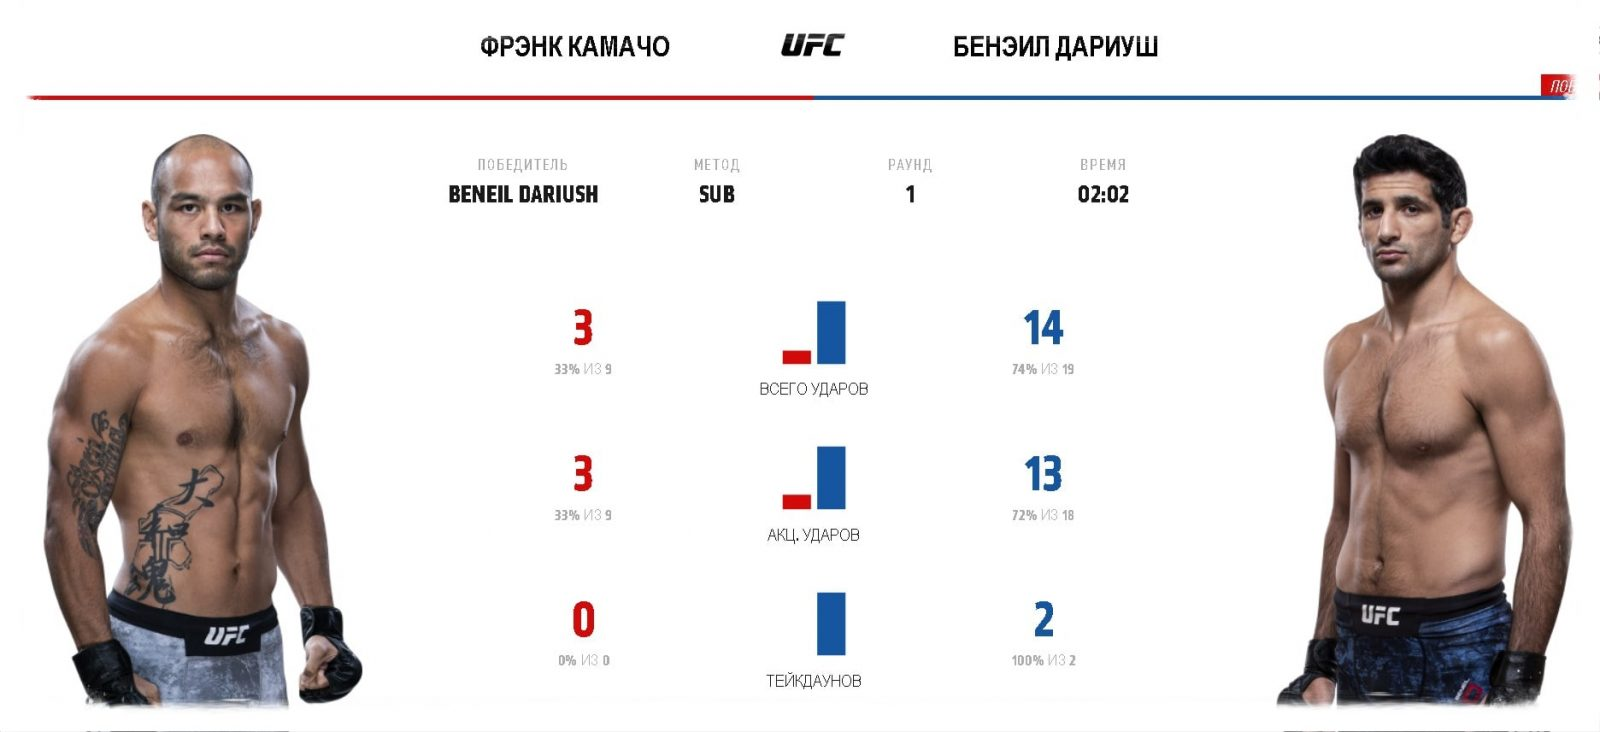 video-boya-beneil-dariush-frehnk-kamacho-ufc-fight-night-162